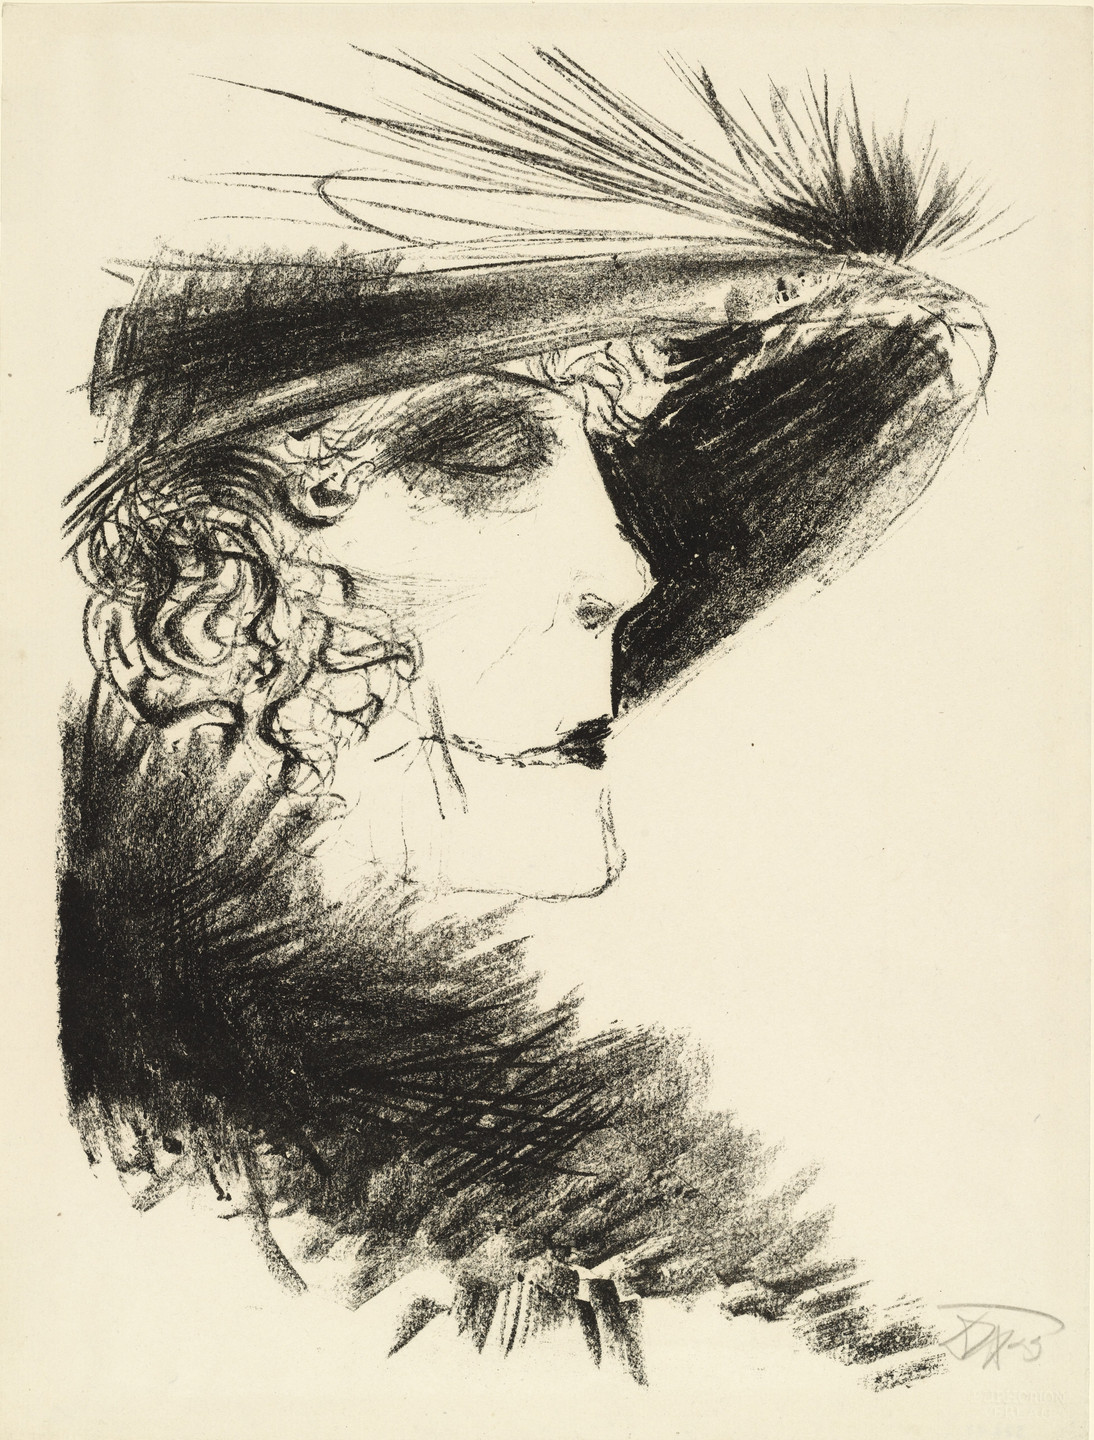 Otto Dix. Woman with Heron Feather (Dame mit Reiher) from the portfolio Die Schaffenden, vol. 5, no. 1. 1923